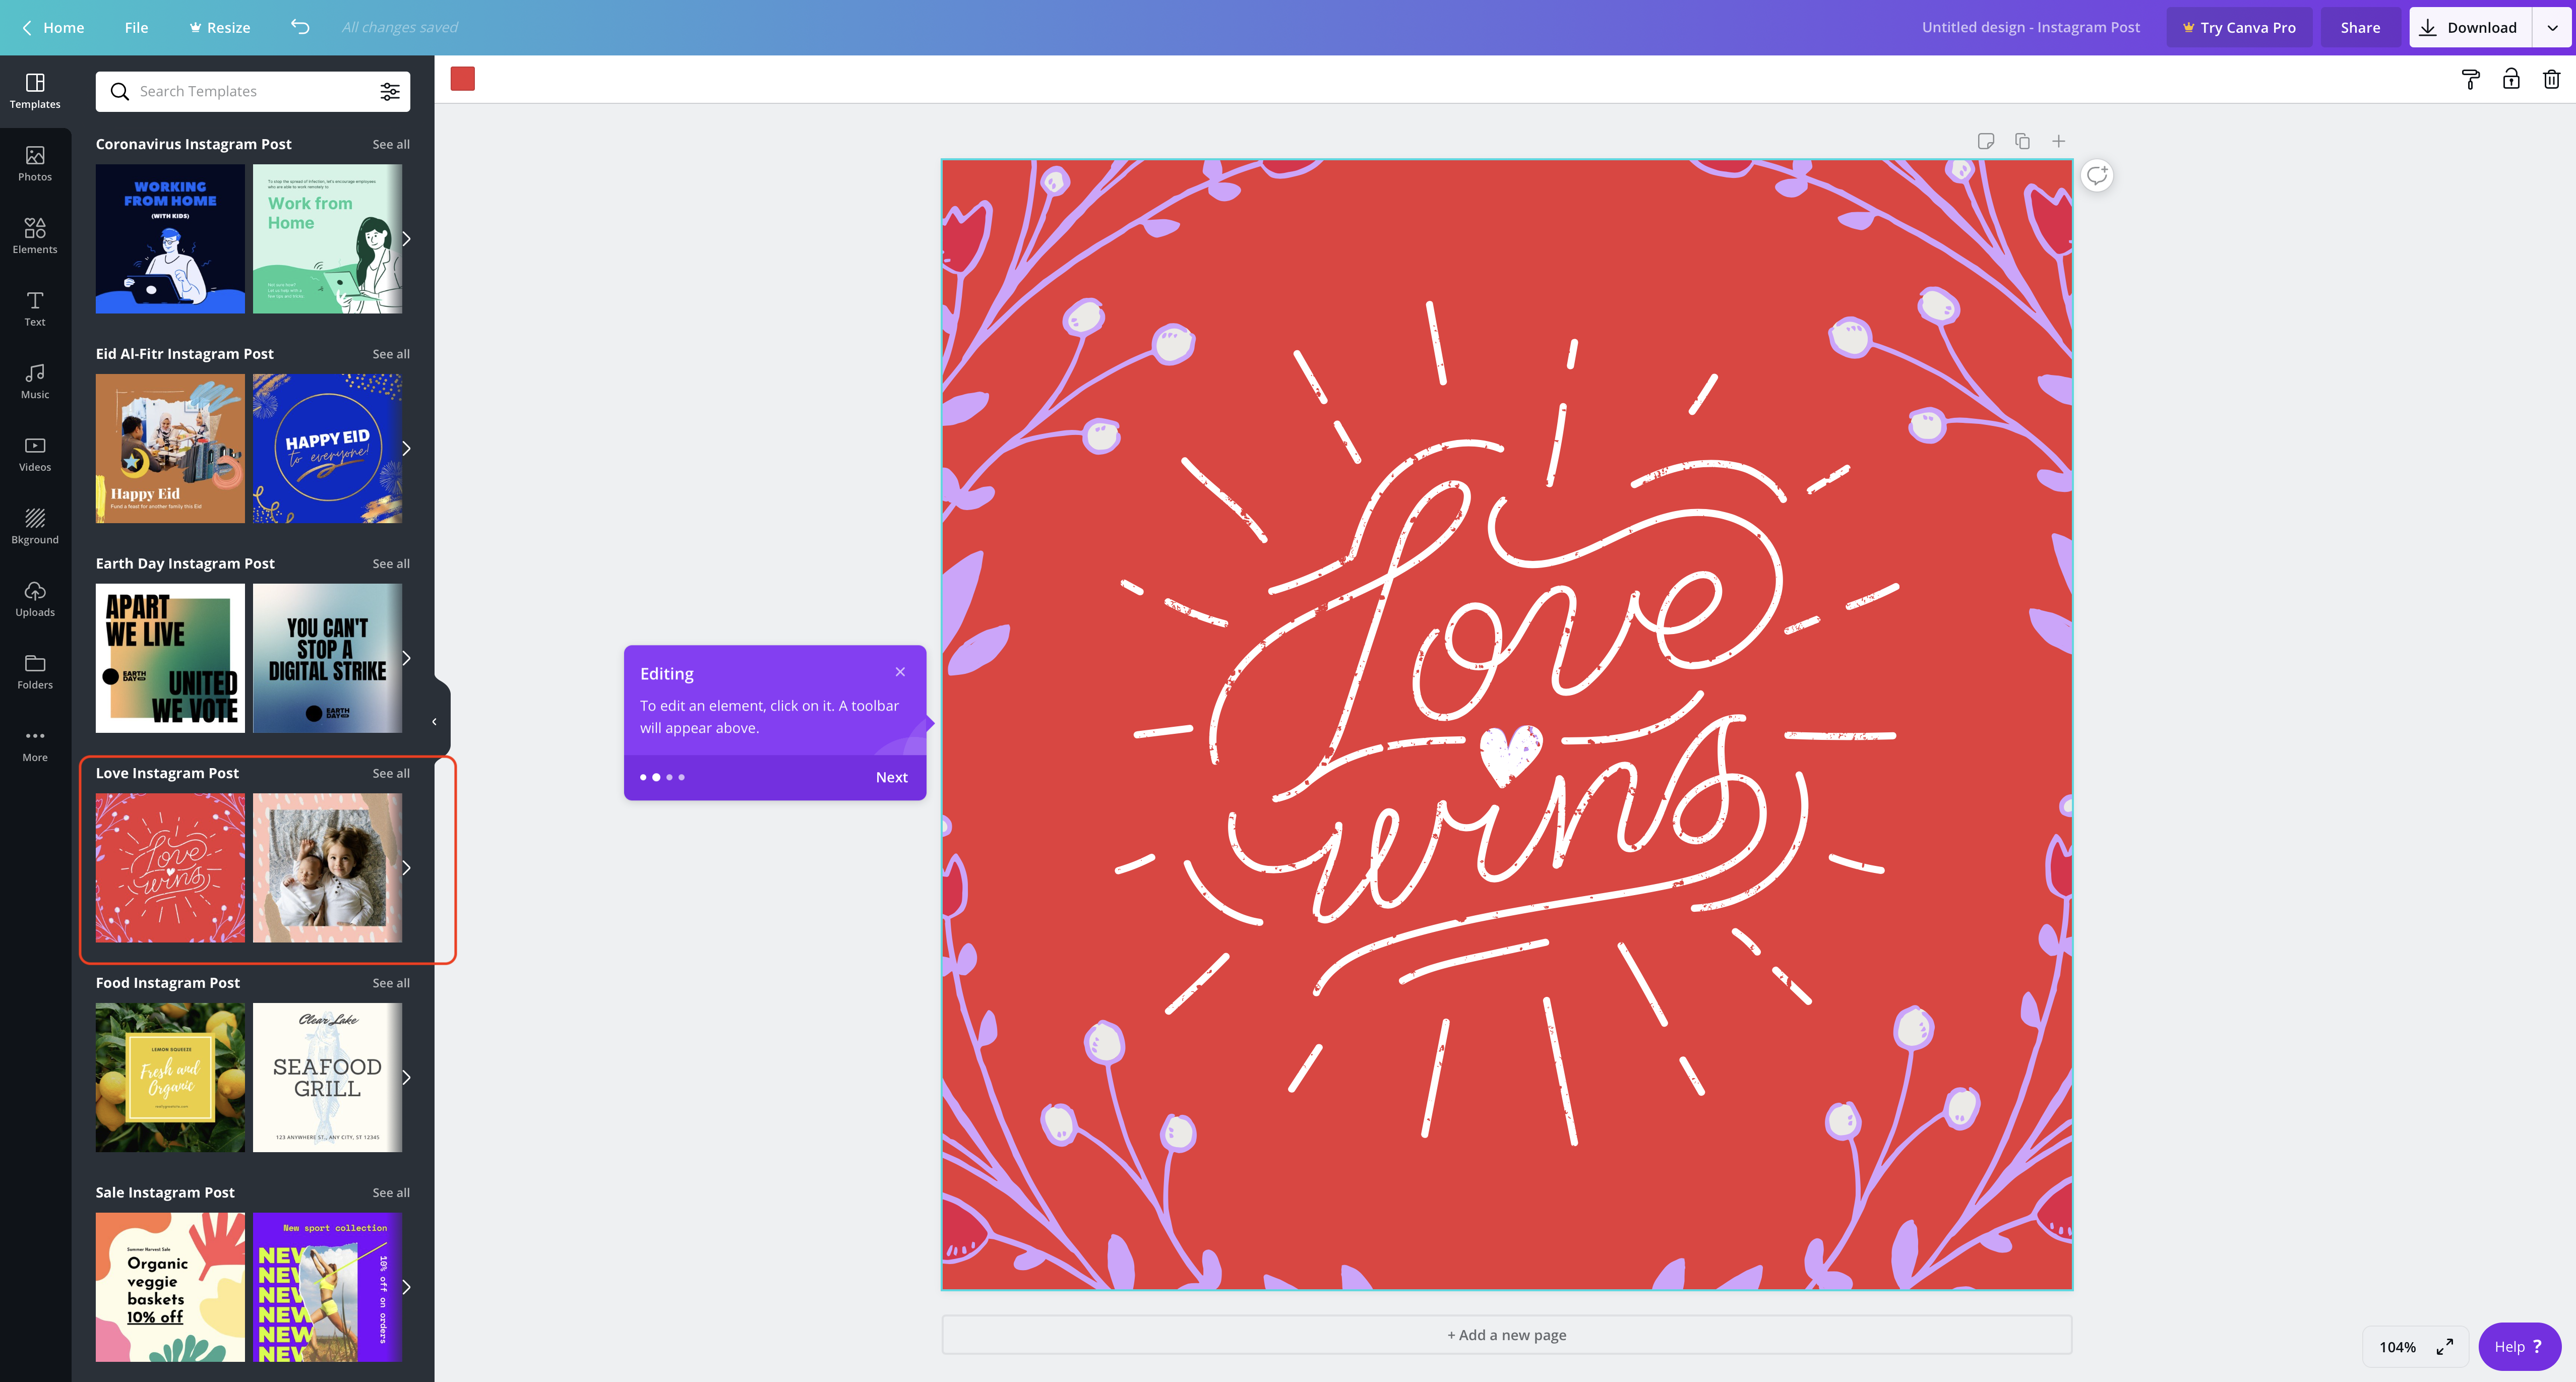 Editing in Canva